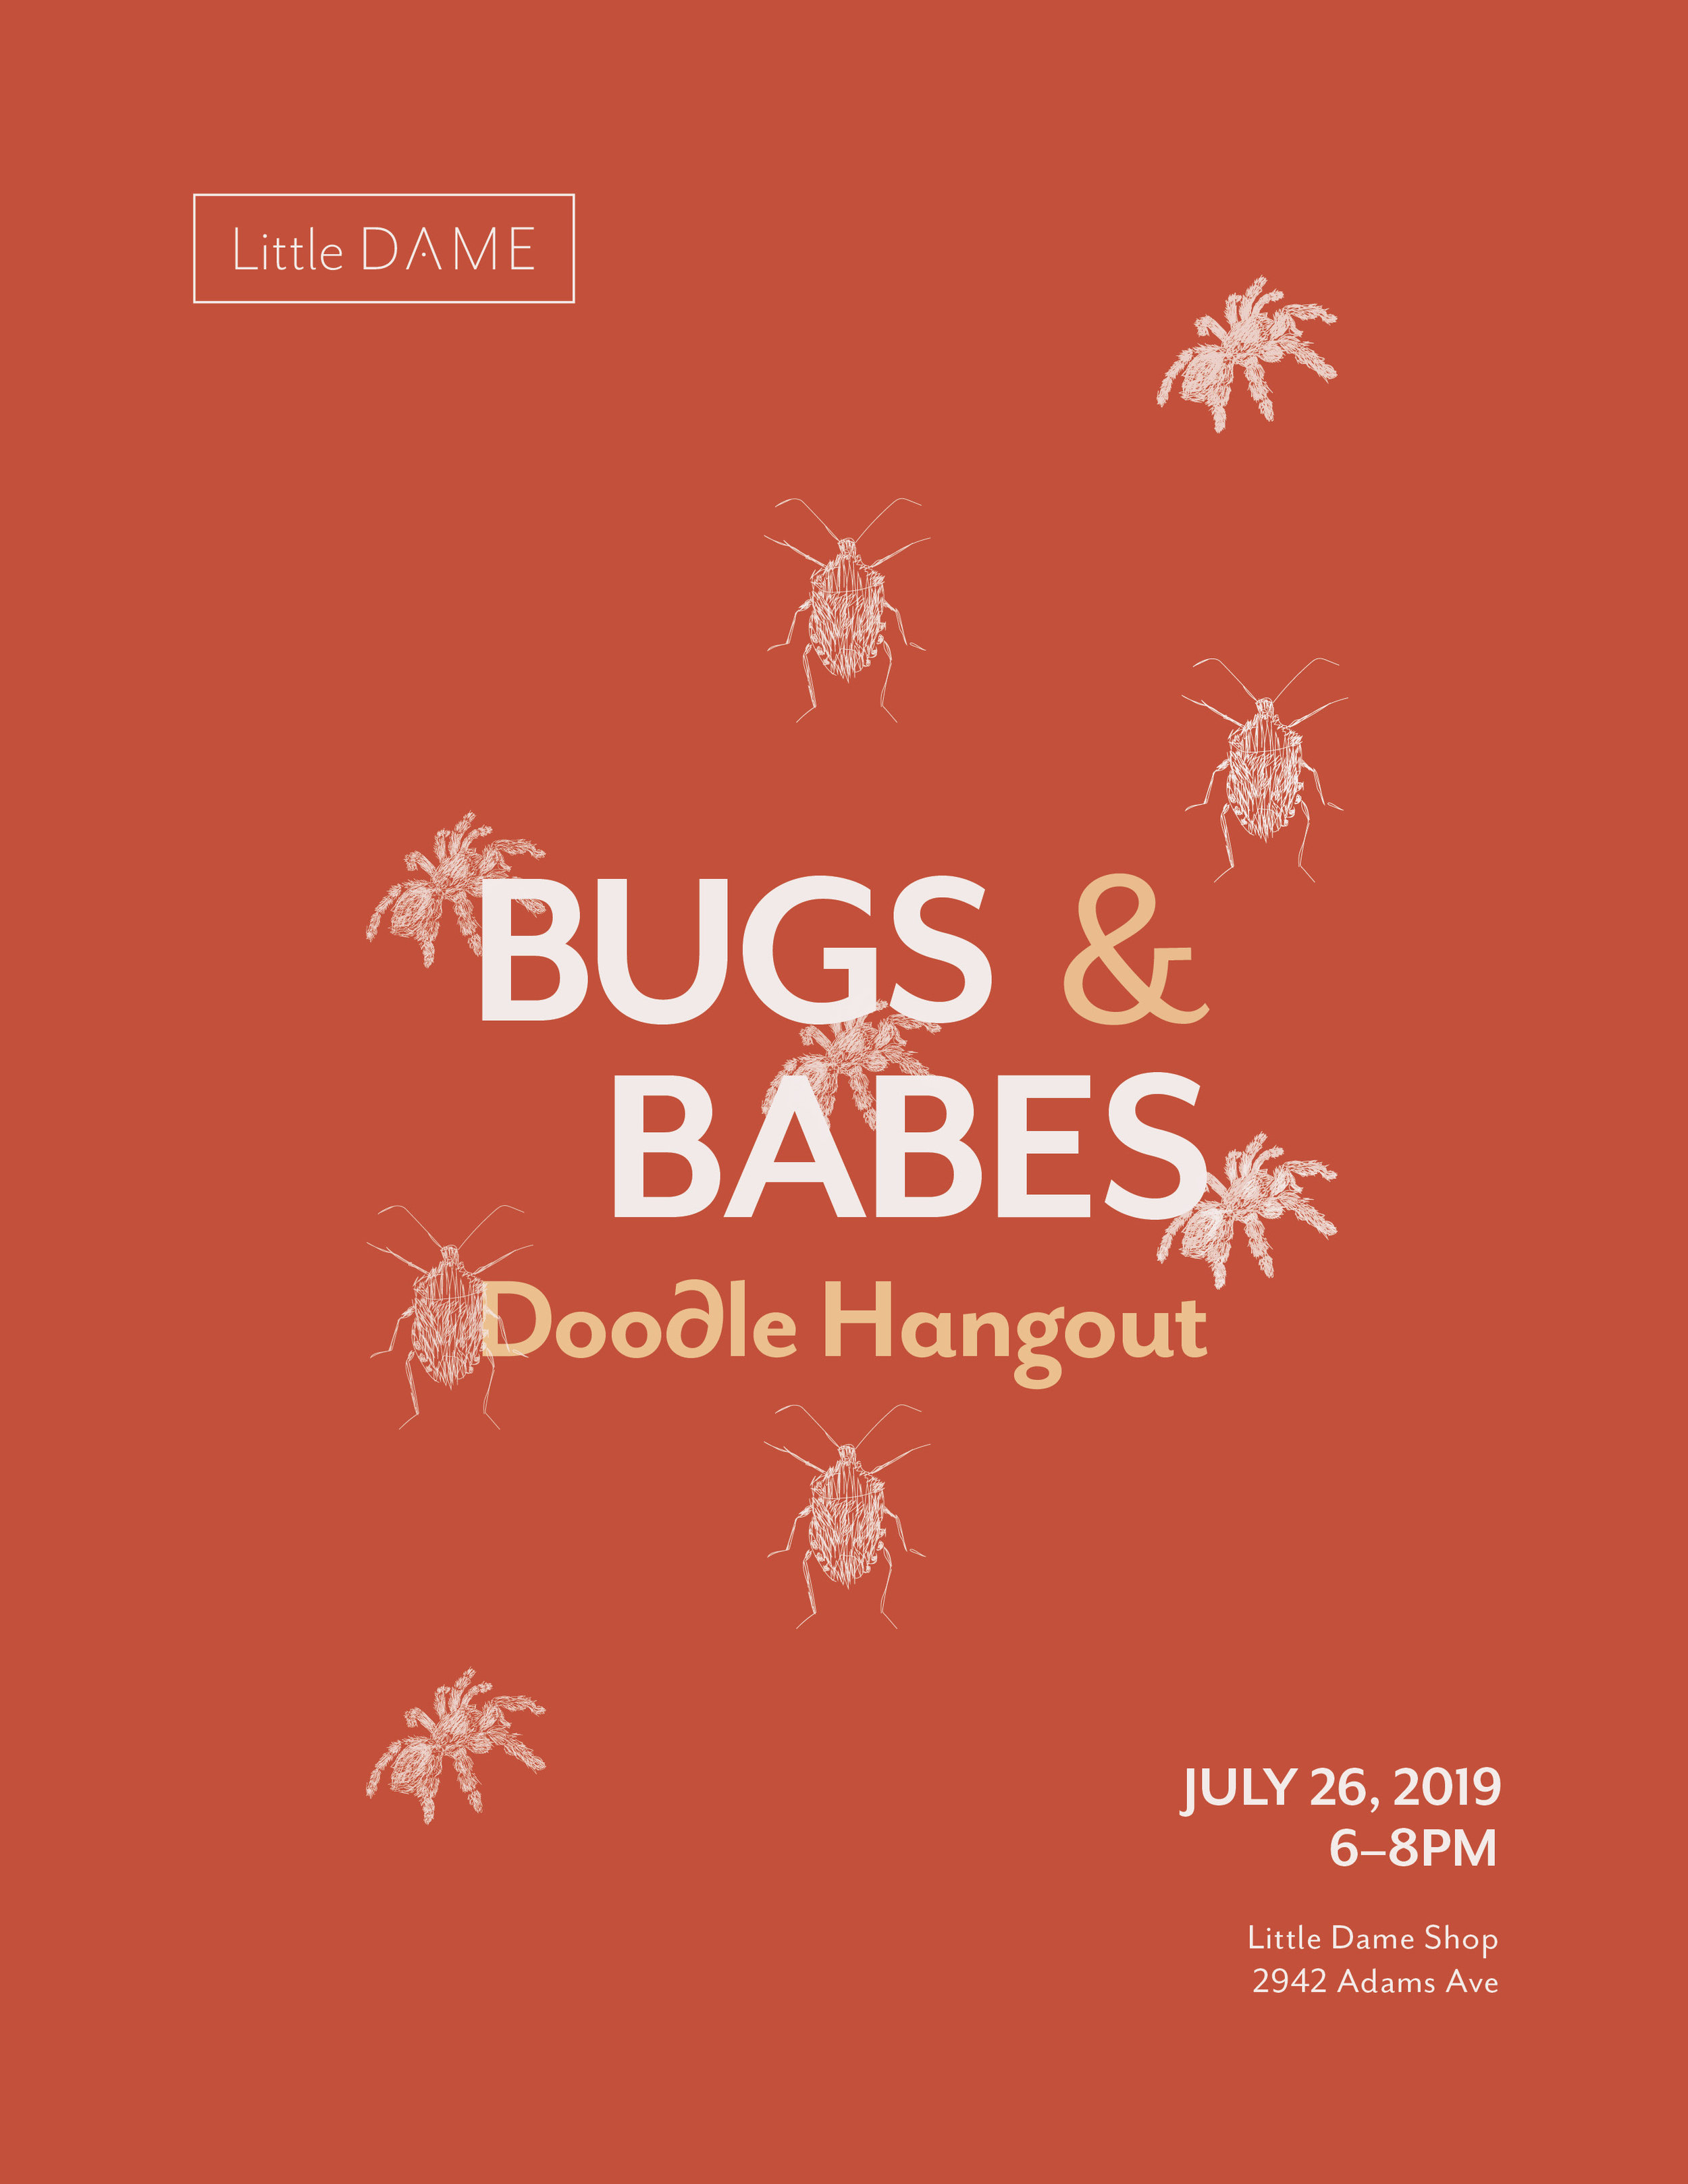 Little Dame | Bugs & Babes | Feels Design Studio, July 2019